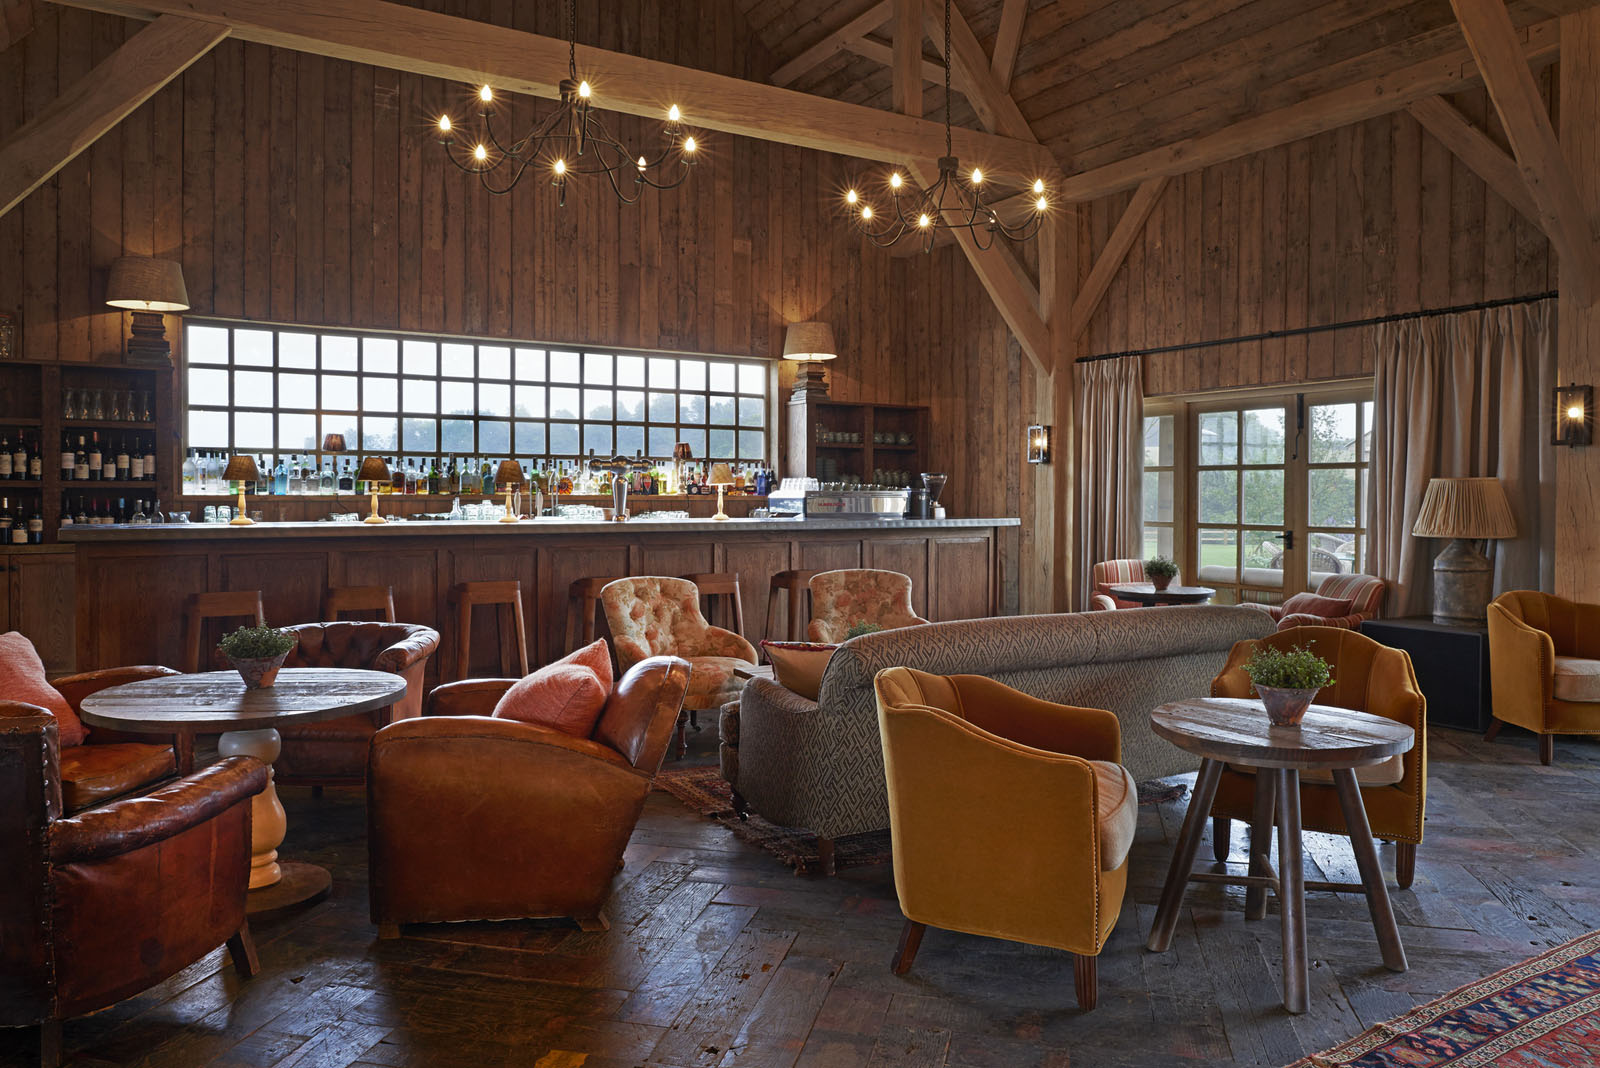 Soho Farmhouse Oxfordshire An Exclusive Retreat In The English Countryside IDesignArch